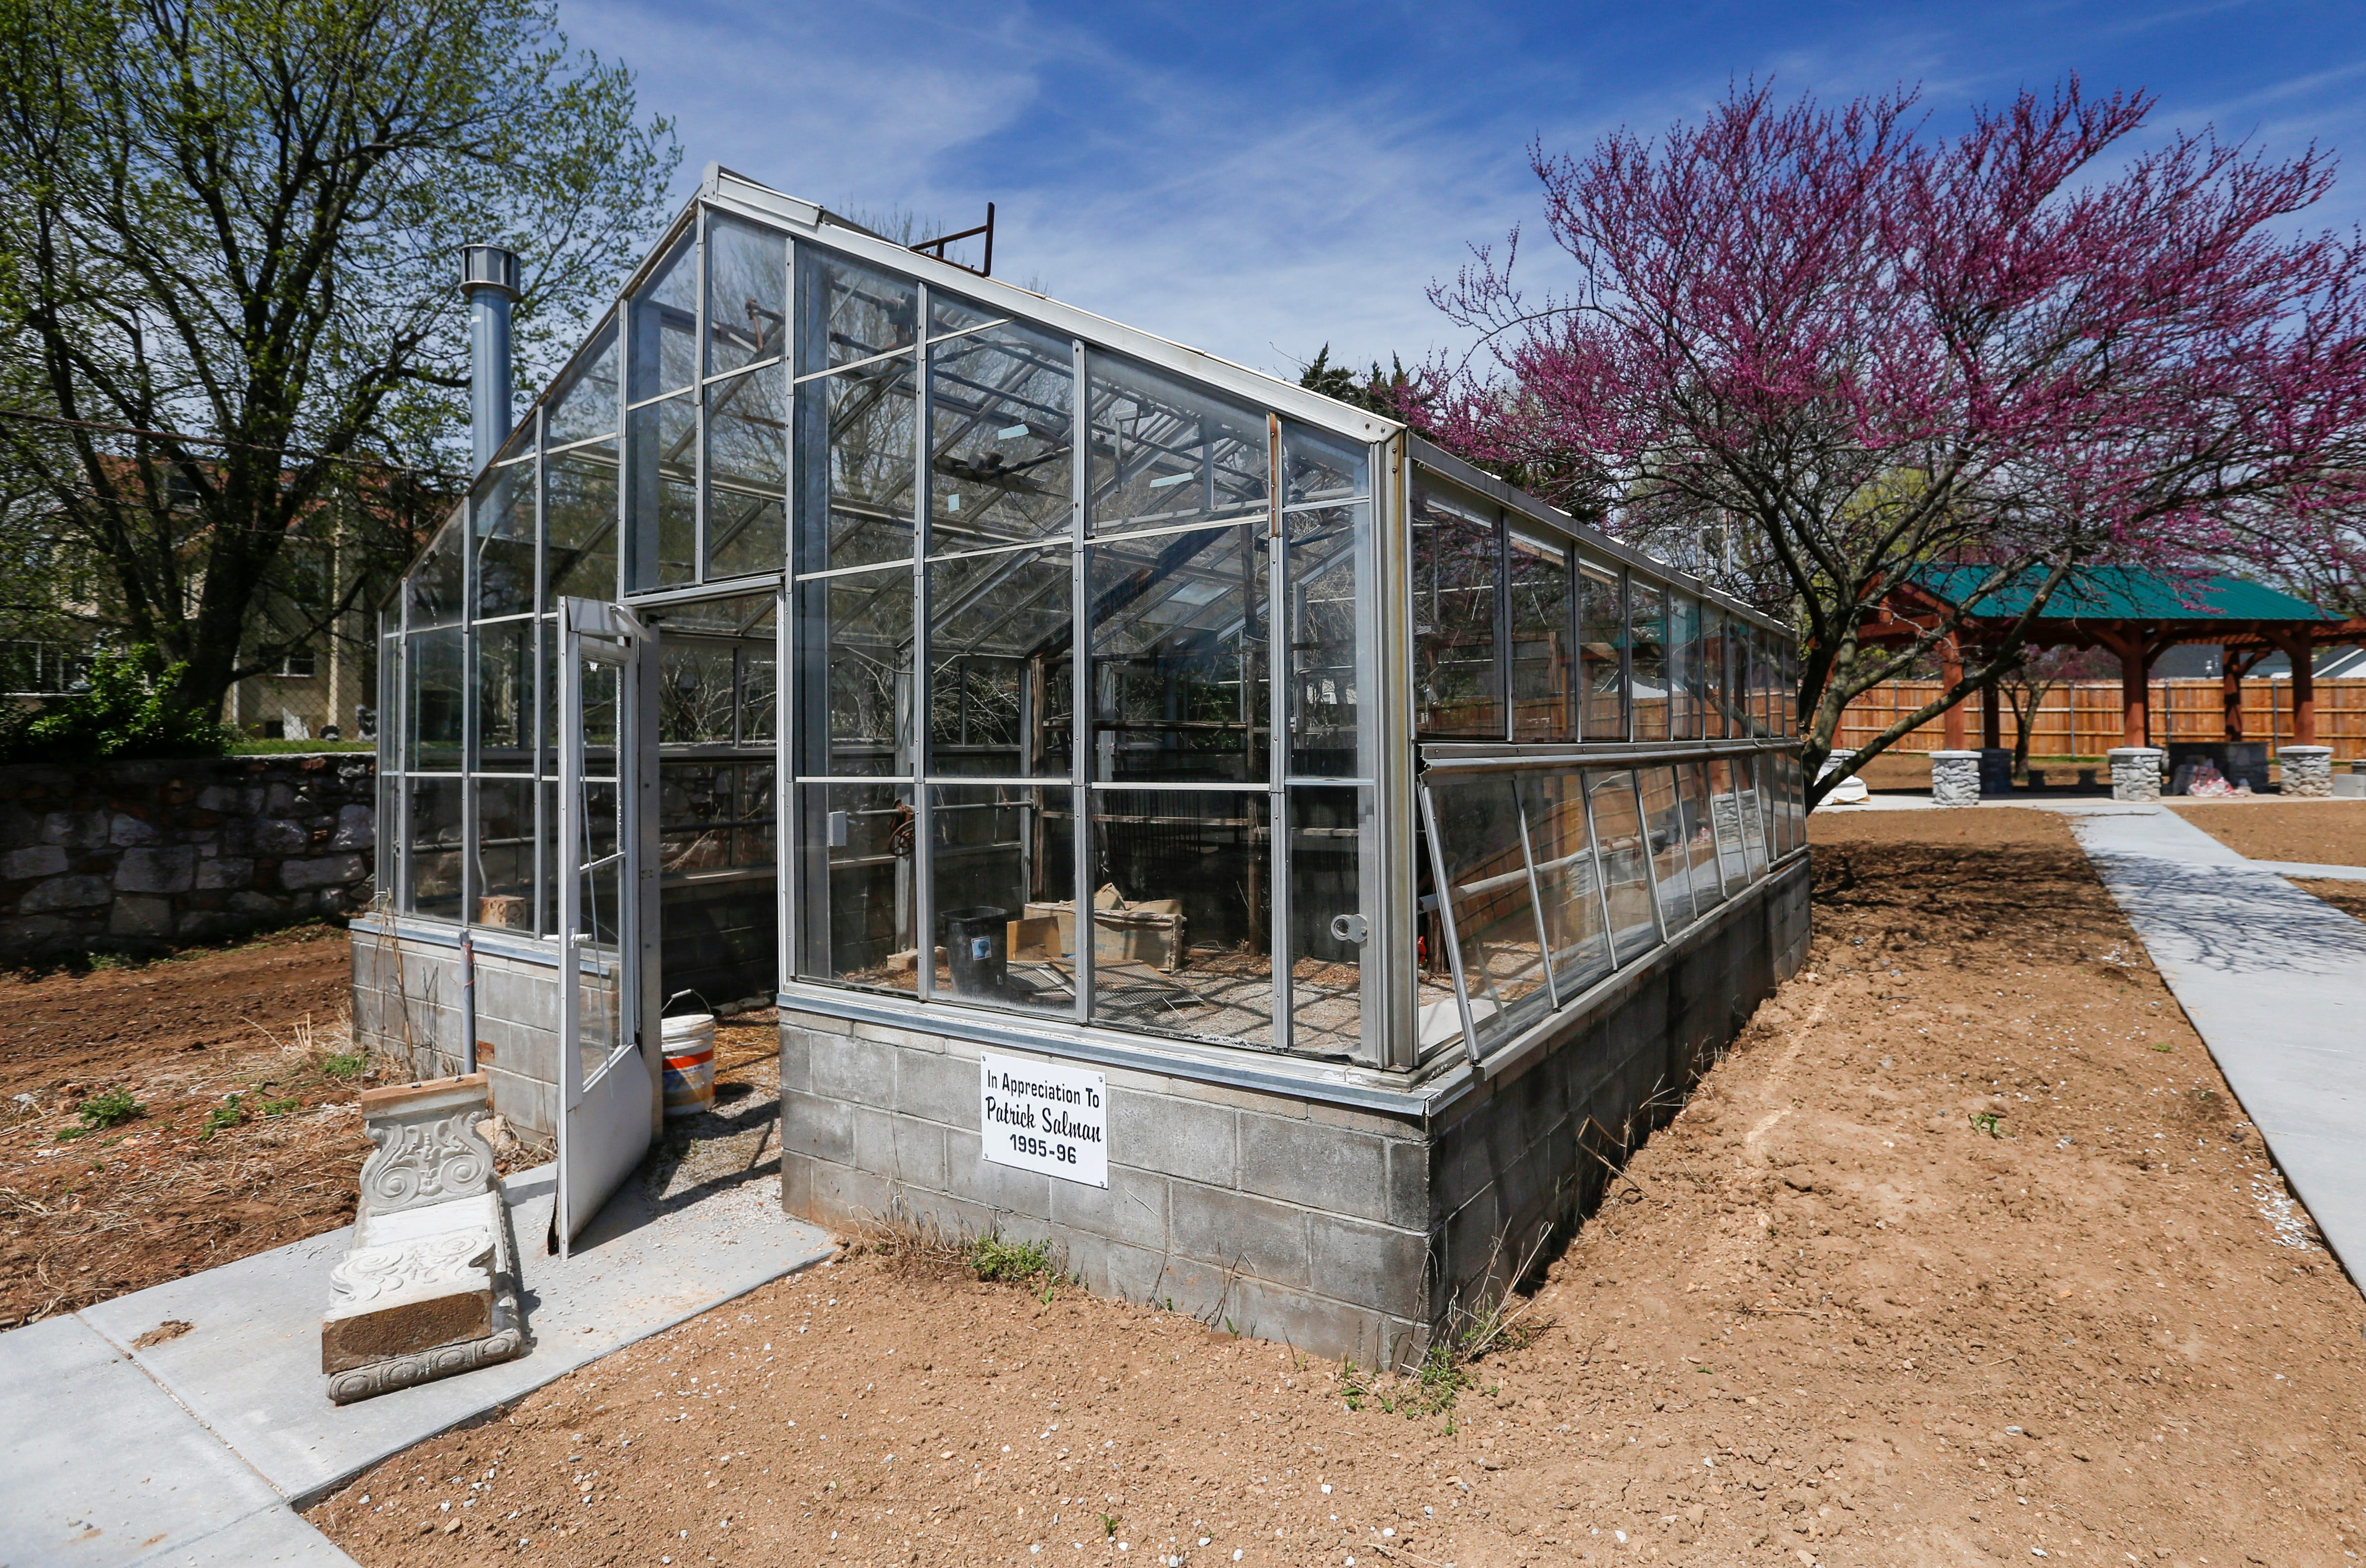 A greenhouse is located in the outdoor common area at the Bailey School Lofts on Central Street near Campbell Avenue.